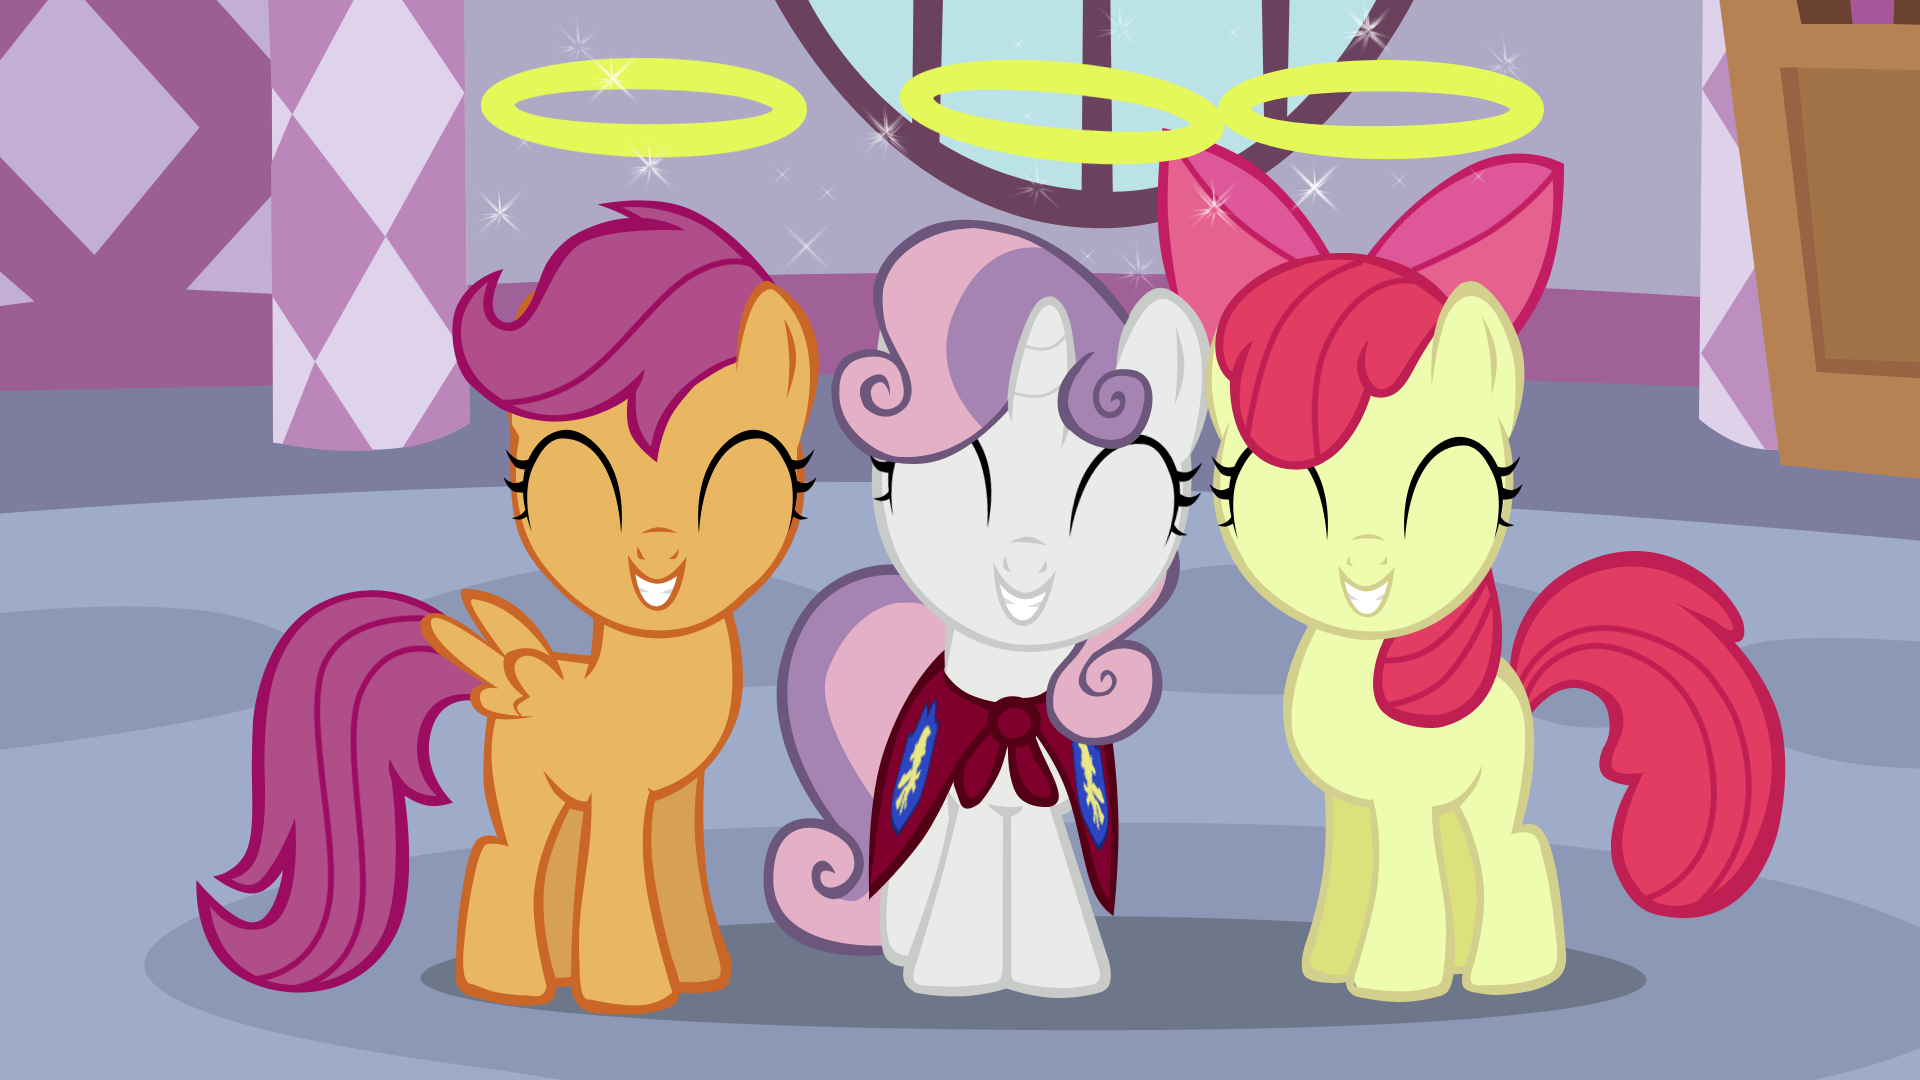 cutie_mark_crusader_angels_by_tocupine-d3af3gx-_n1305446898417_.png